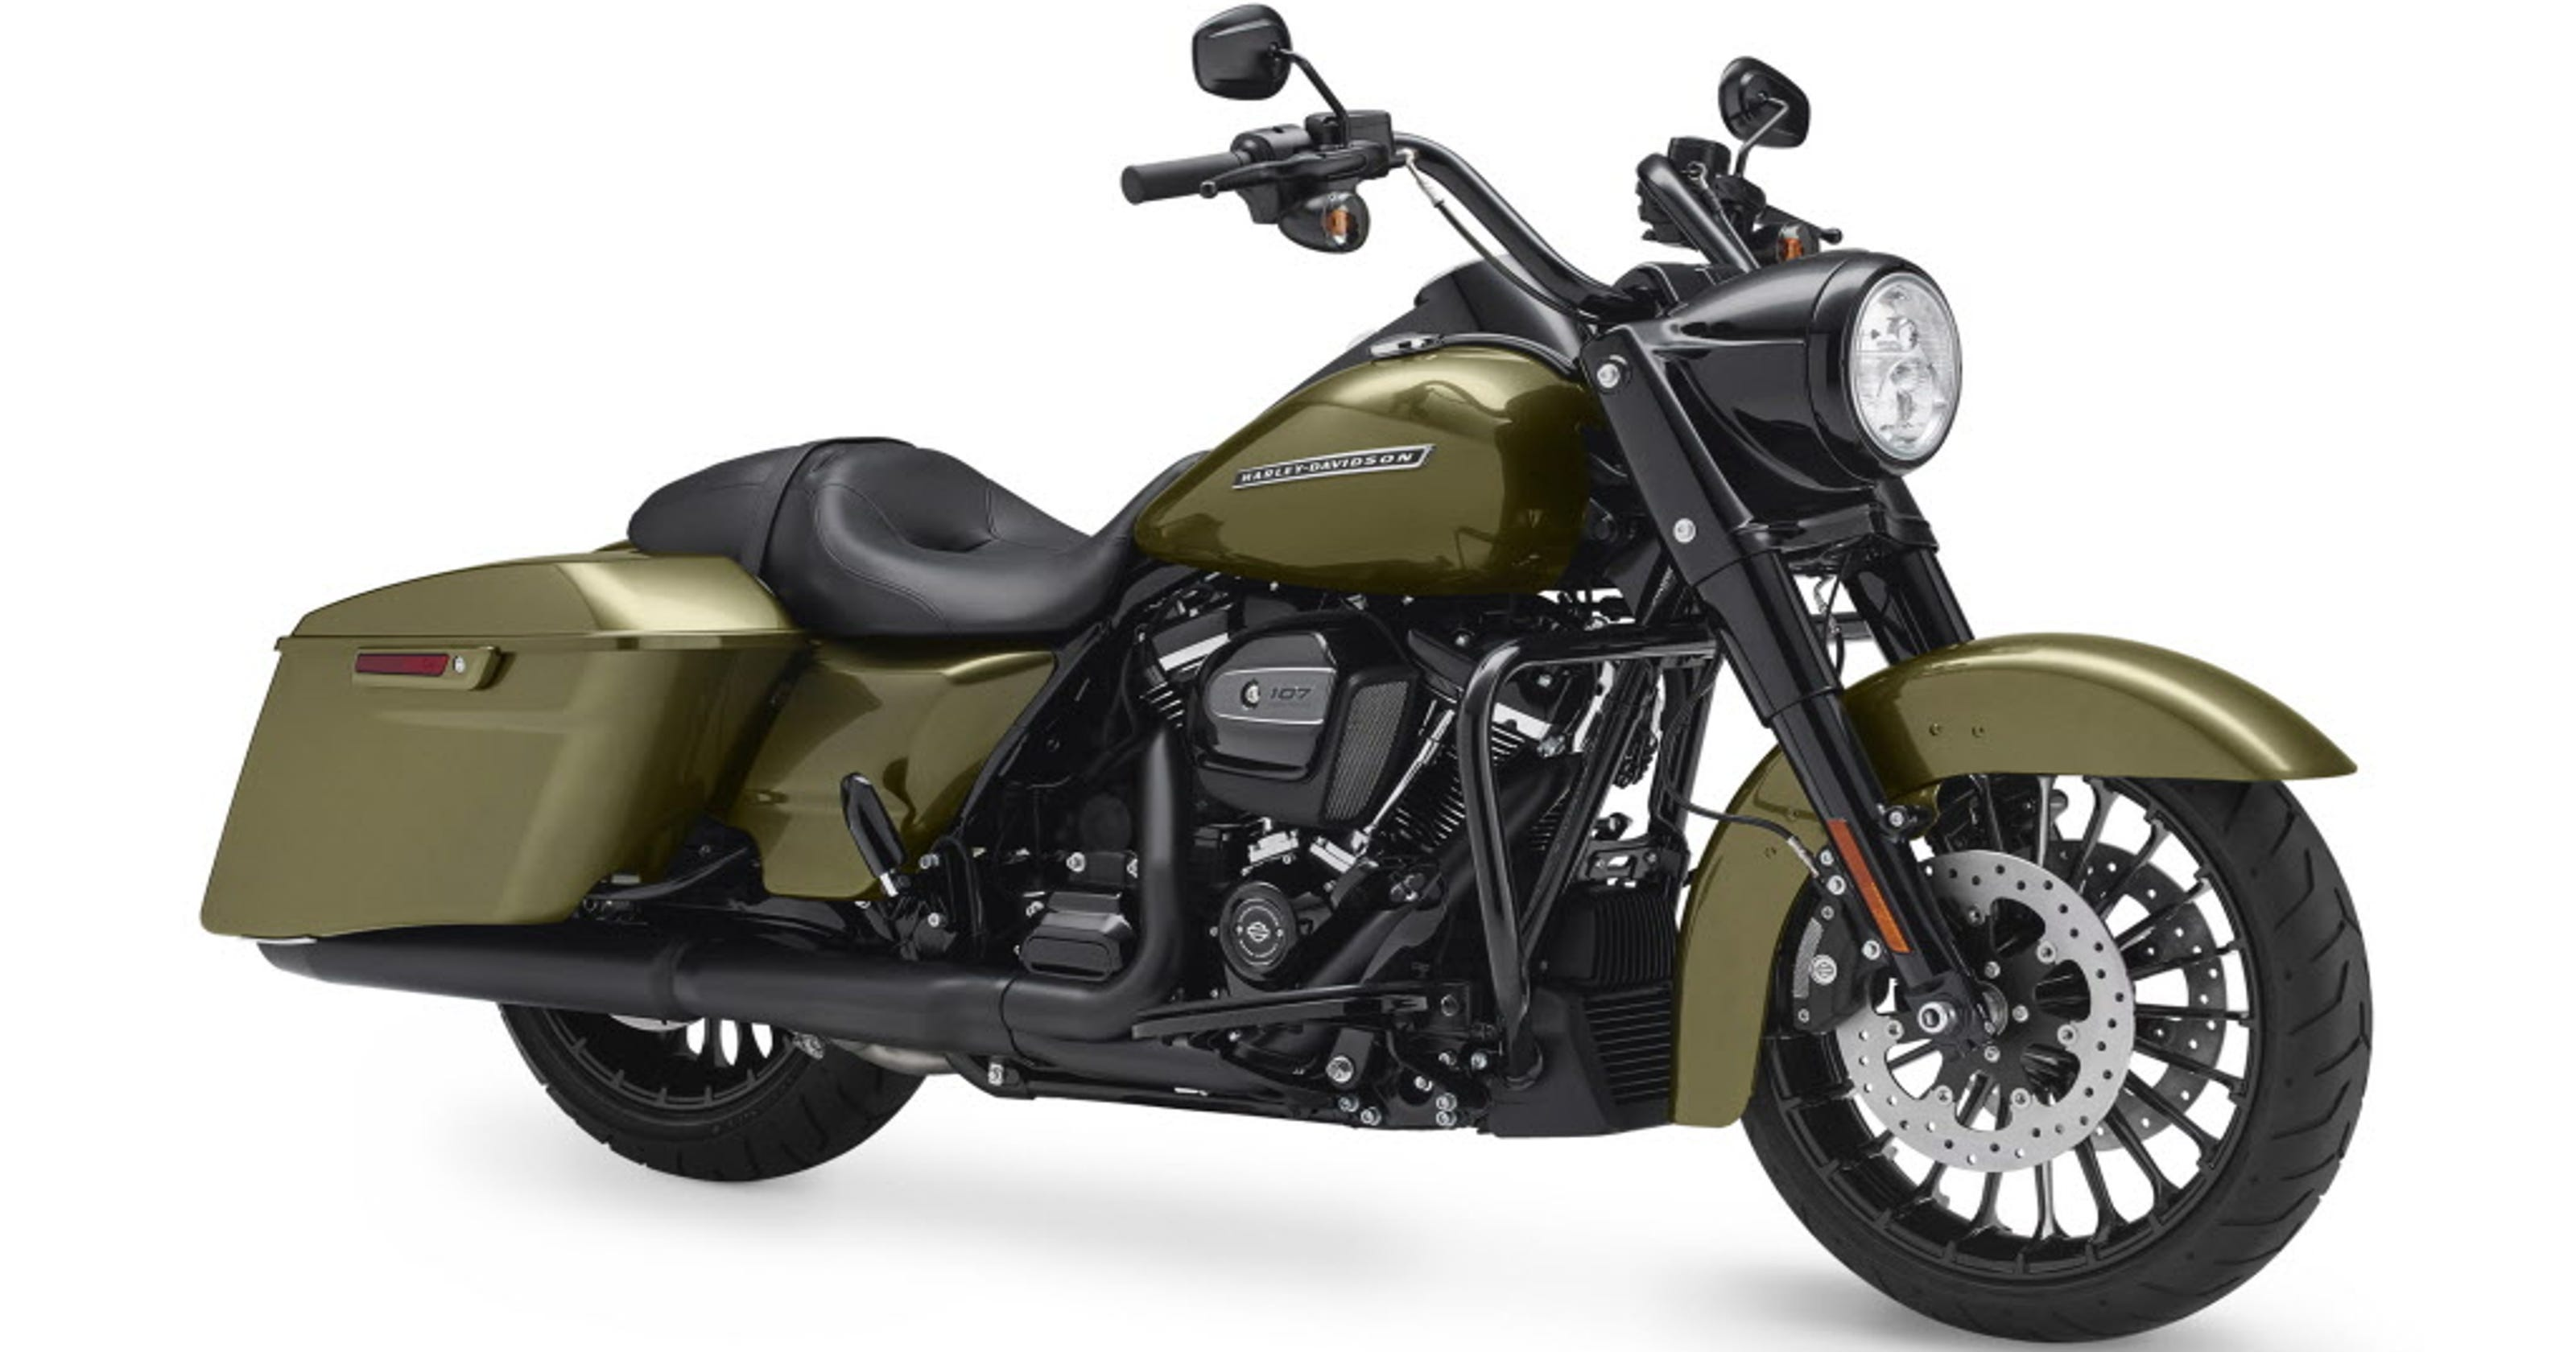 Harley Davidson Recall 238380 Bikes With Clutch Defect To Be Fixed